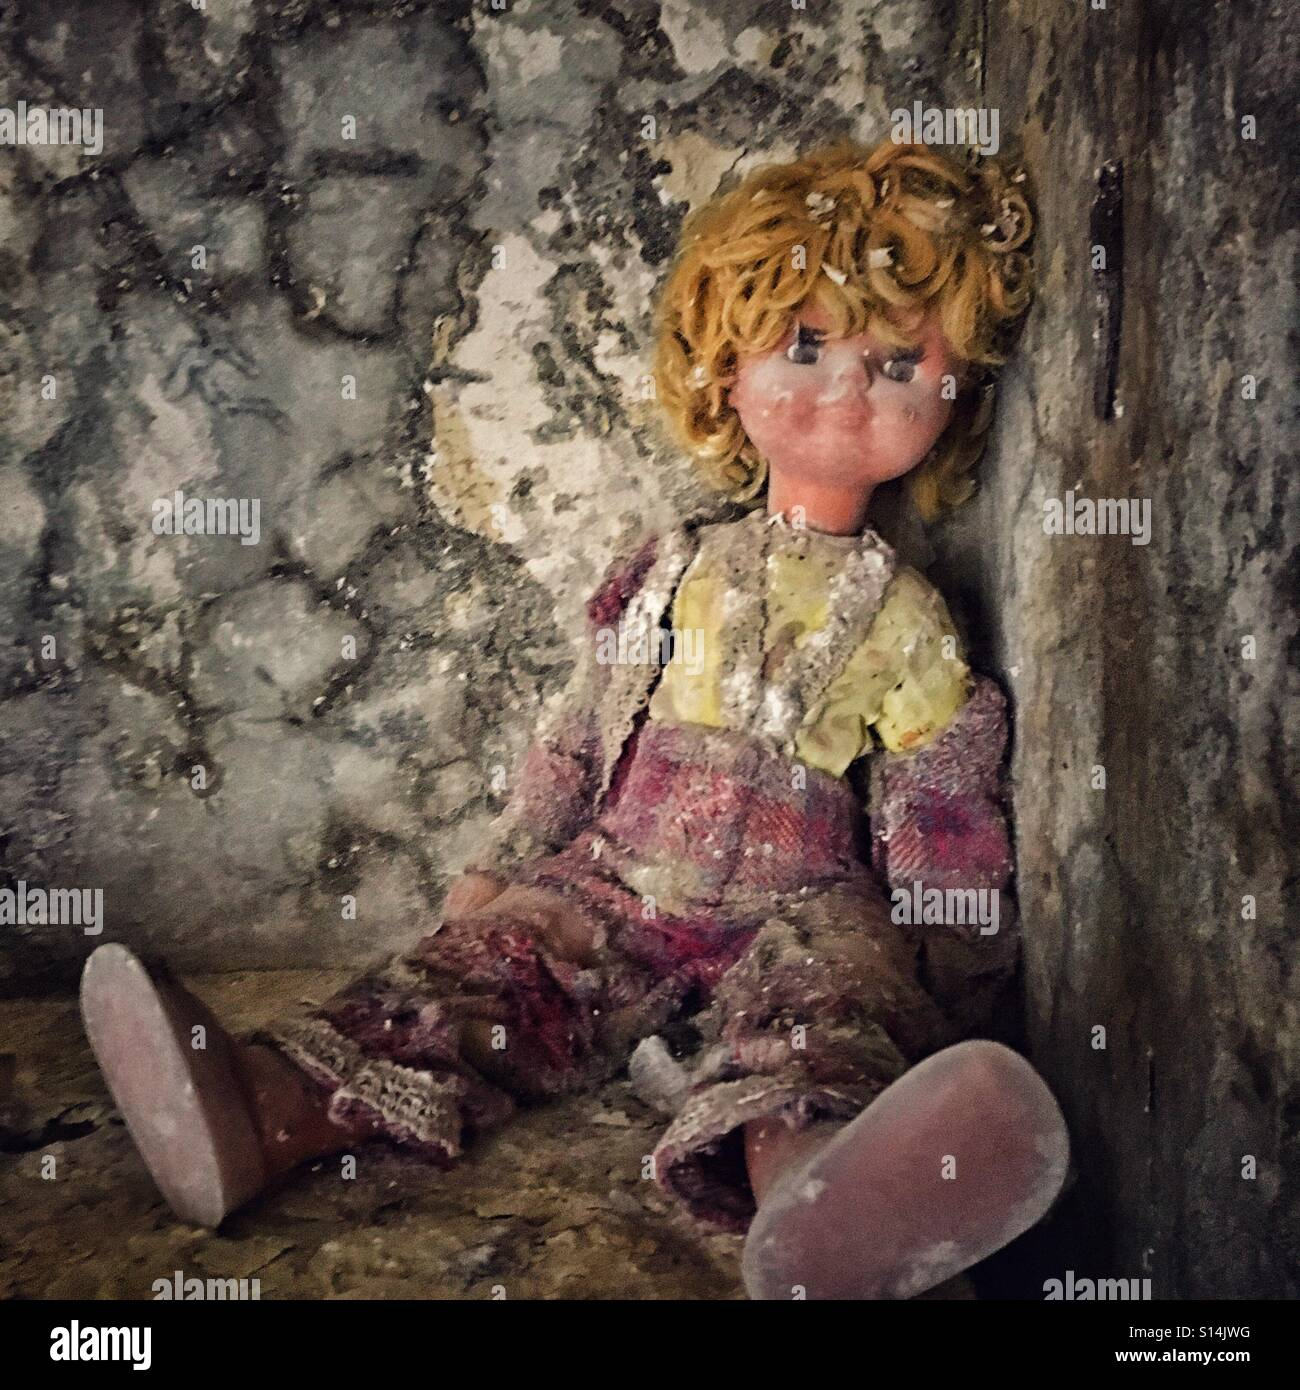 Old doll in abandoned kindergarten in Pripyat ghost town, Chernobyl Nuclear Power Plant Zone of Alienation, Ukraine - Stock Image